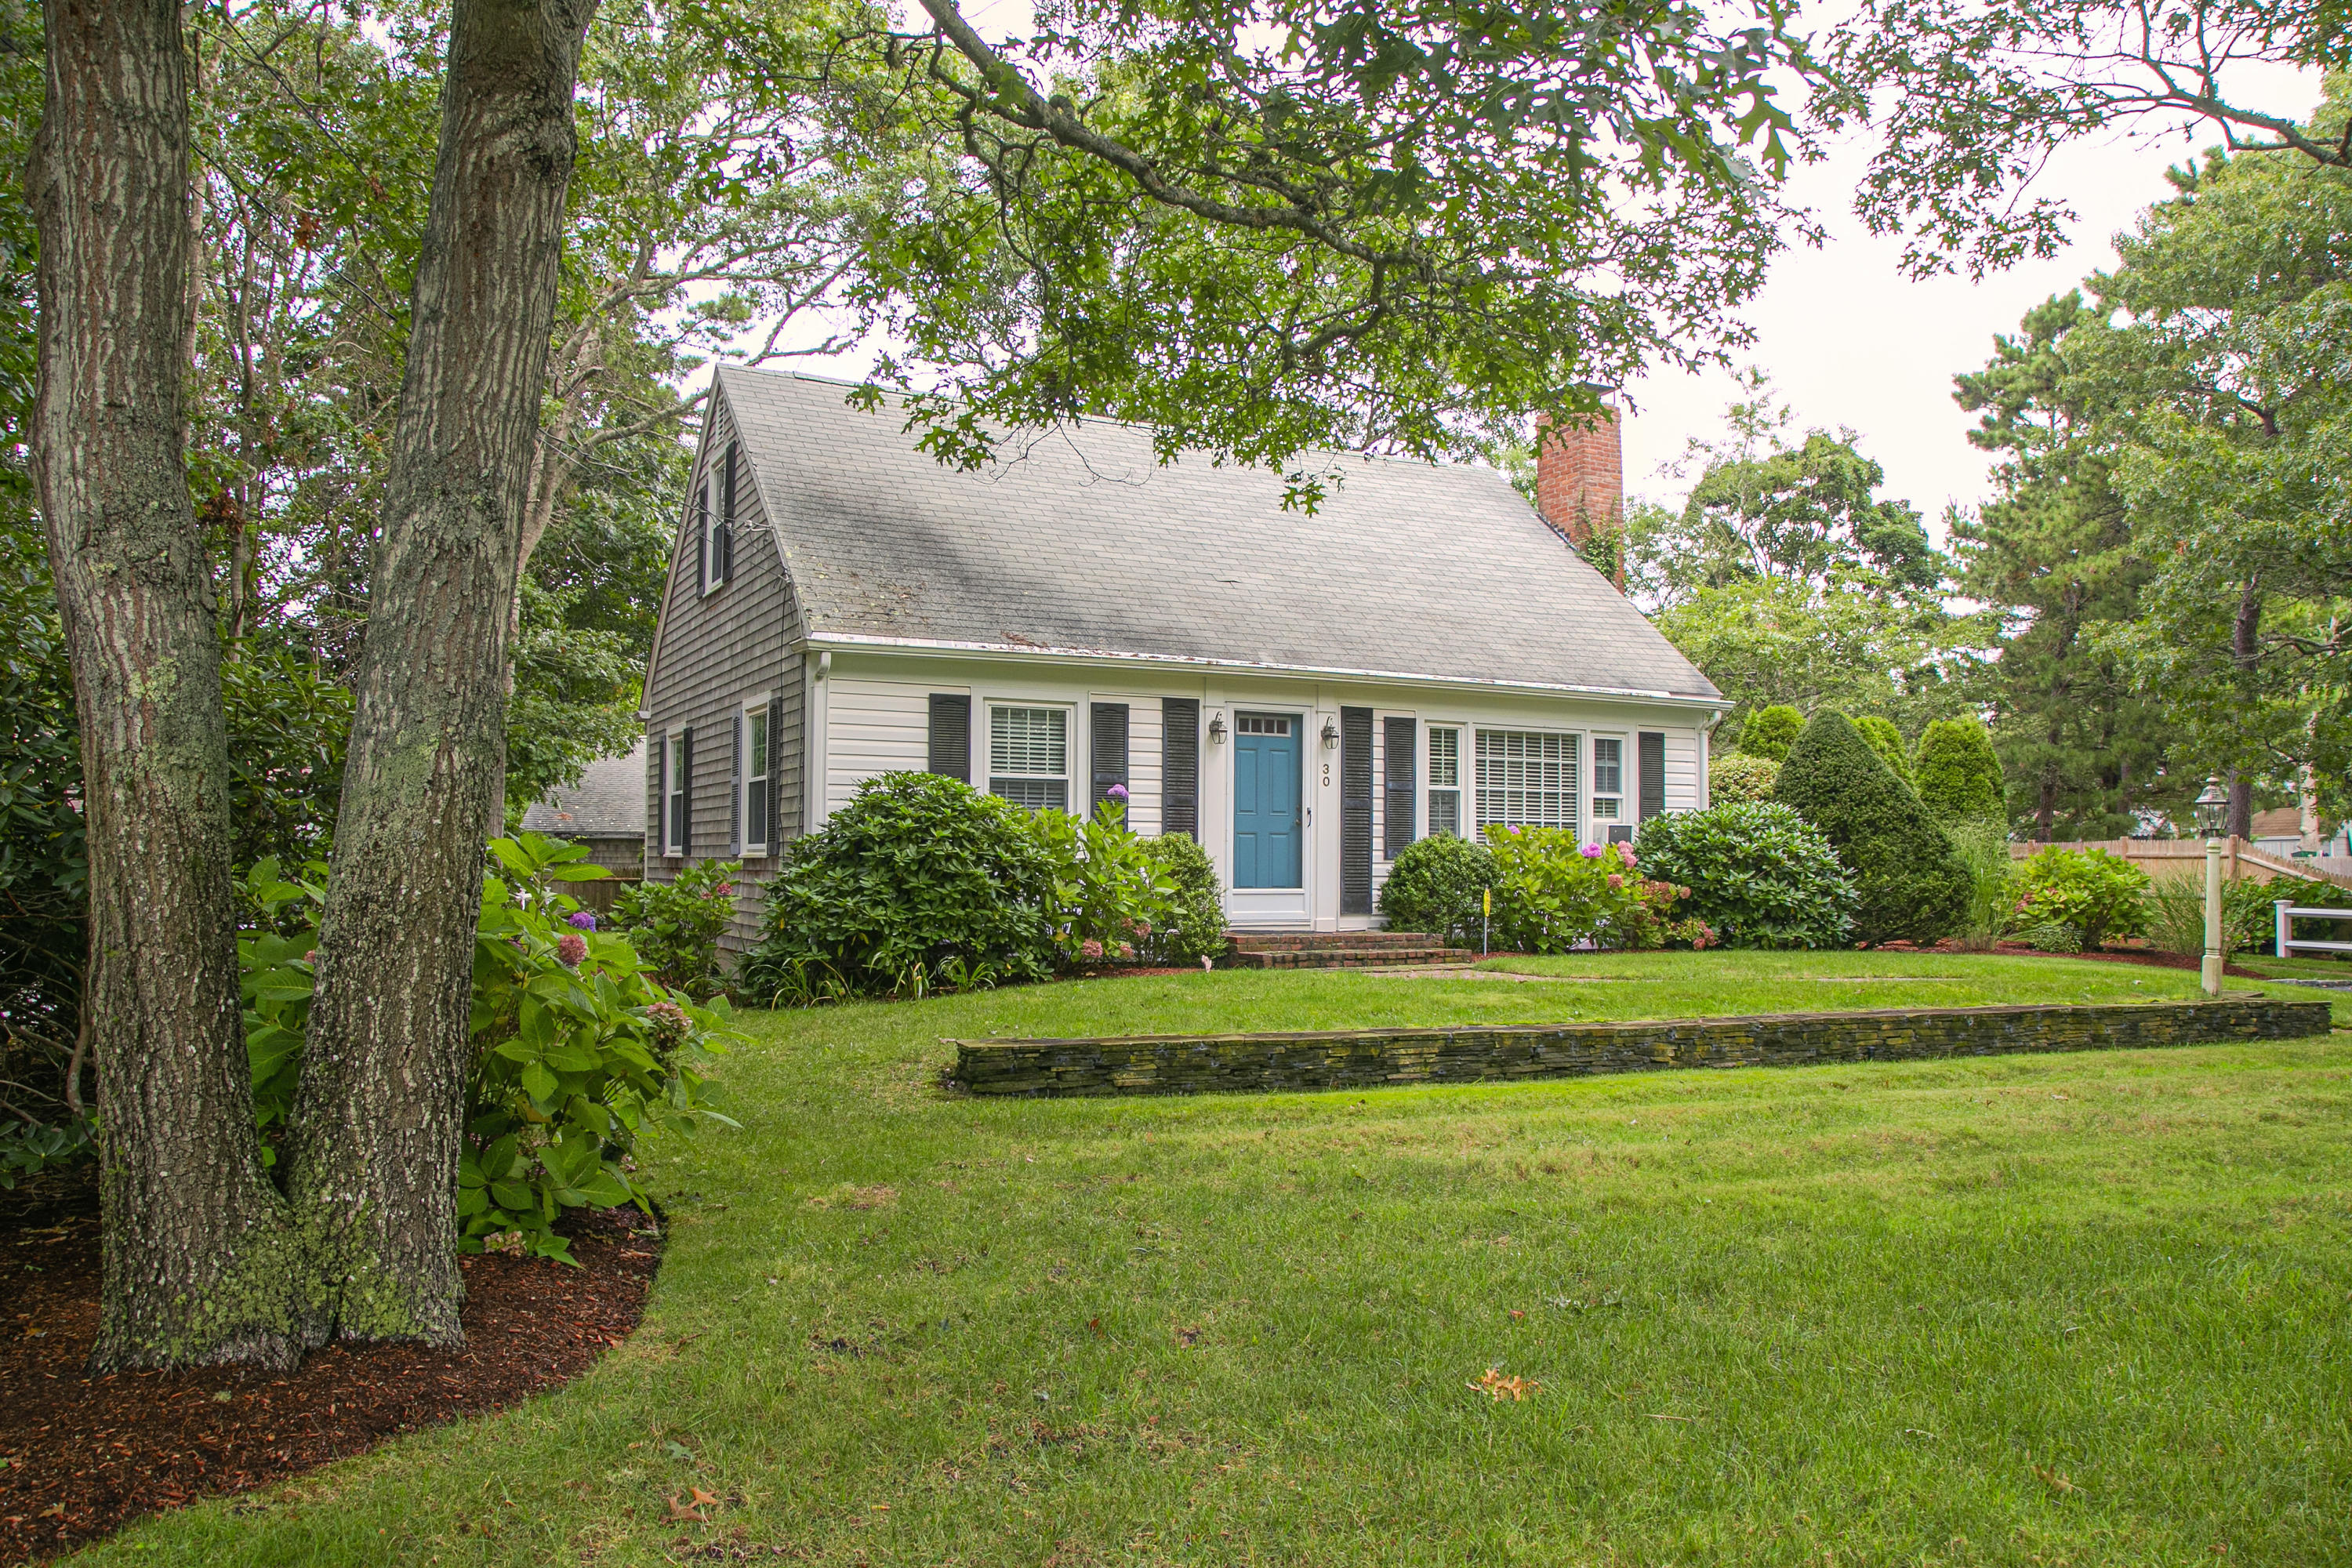 30 Aft Road, South Yarmouth MA, 02664 details